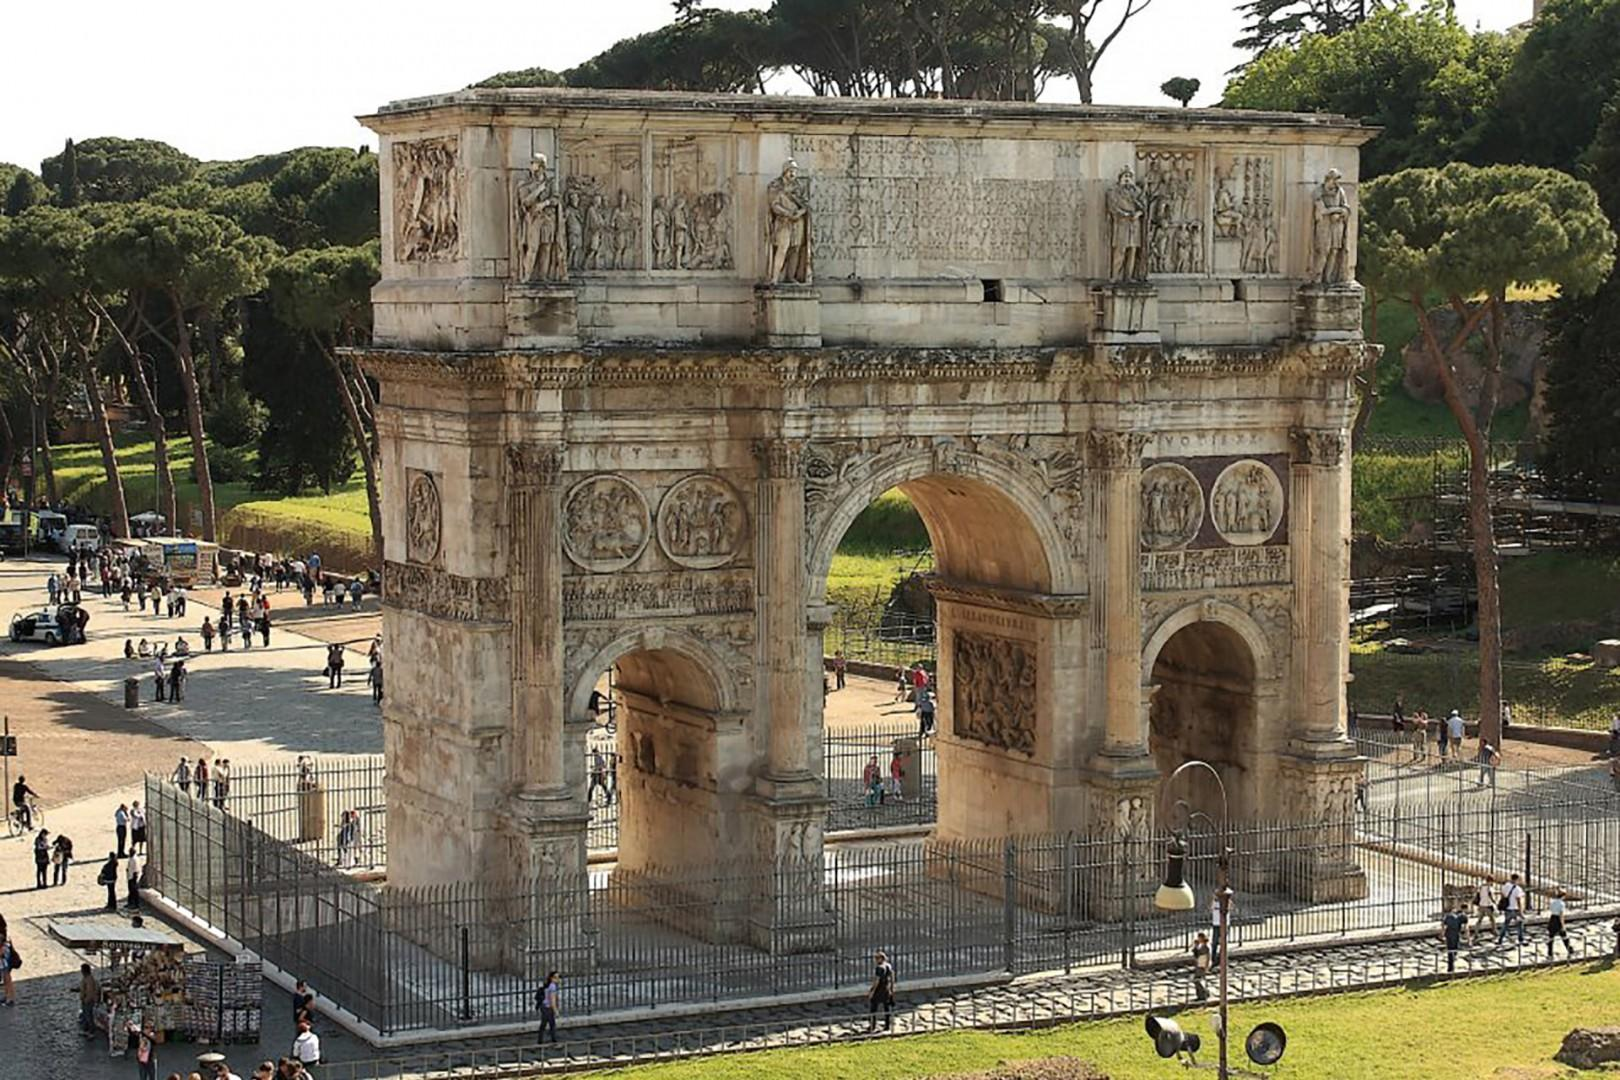 Be drawn to the nearby Triumphal Arch of Constantine the Great (r. A.D. 312-335)